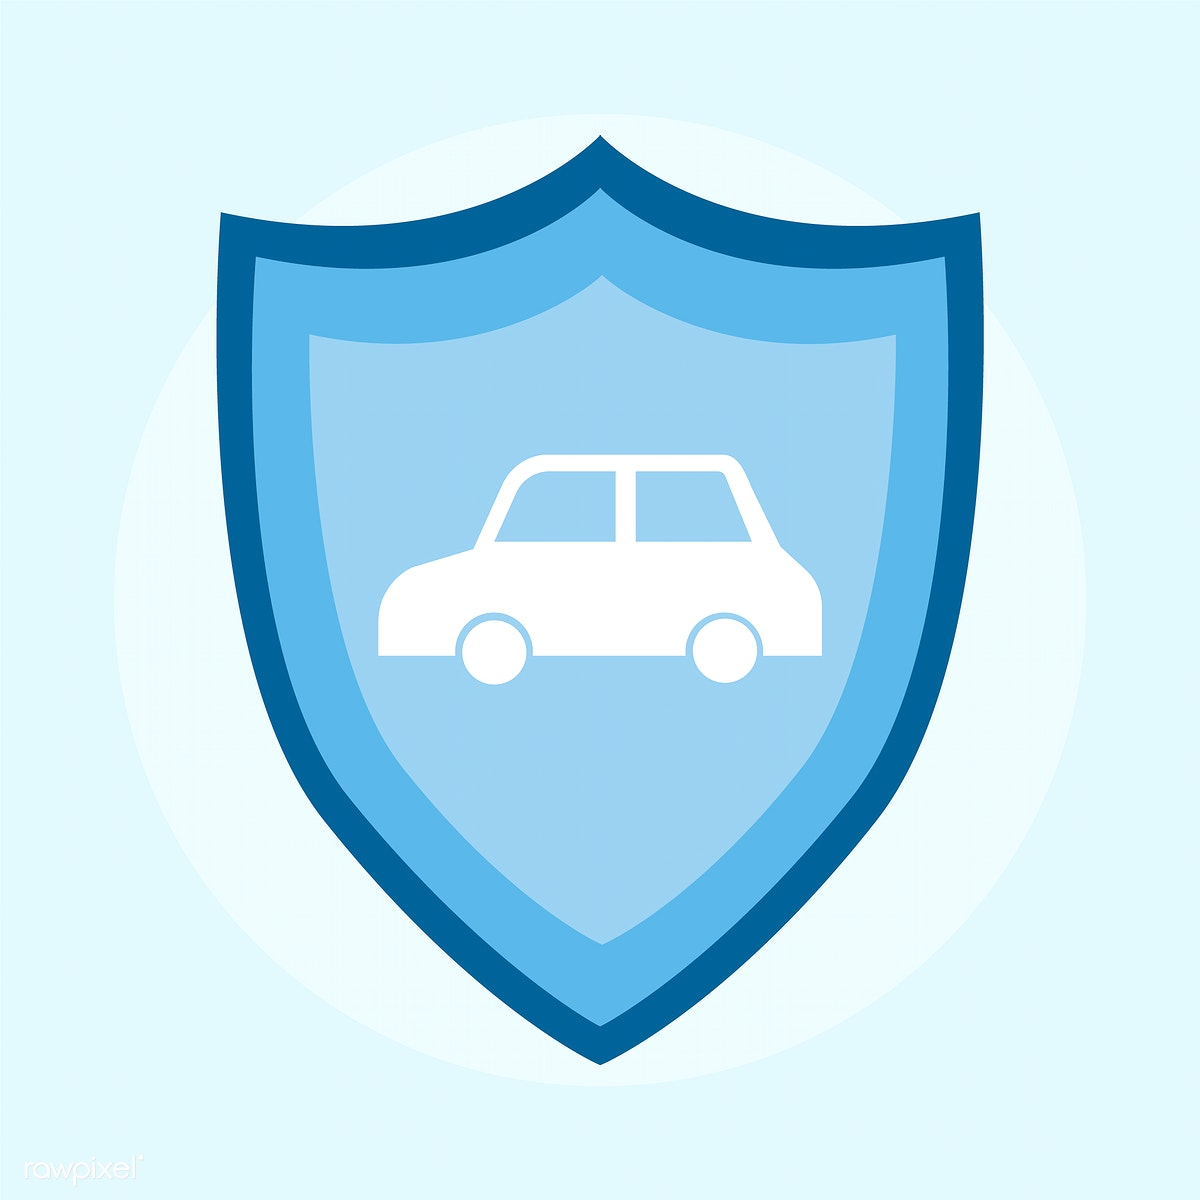 Illustration Of A Car Insurance Icon Royalty Free Stock Vector